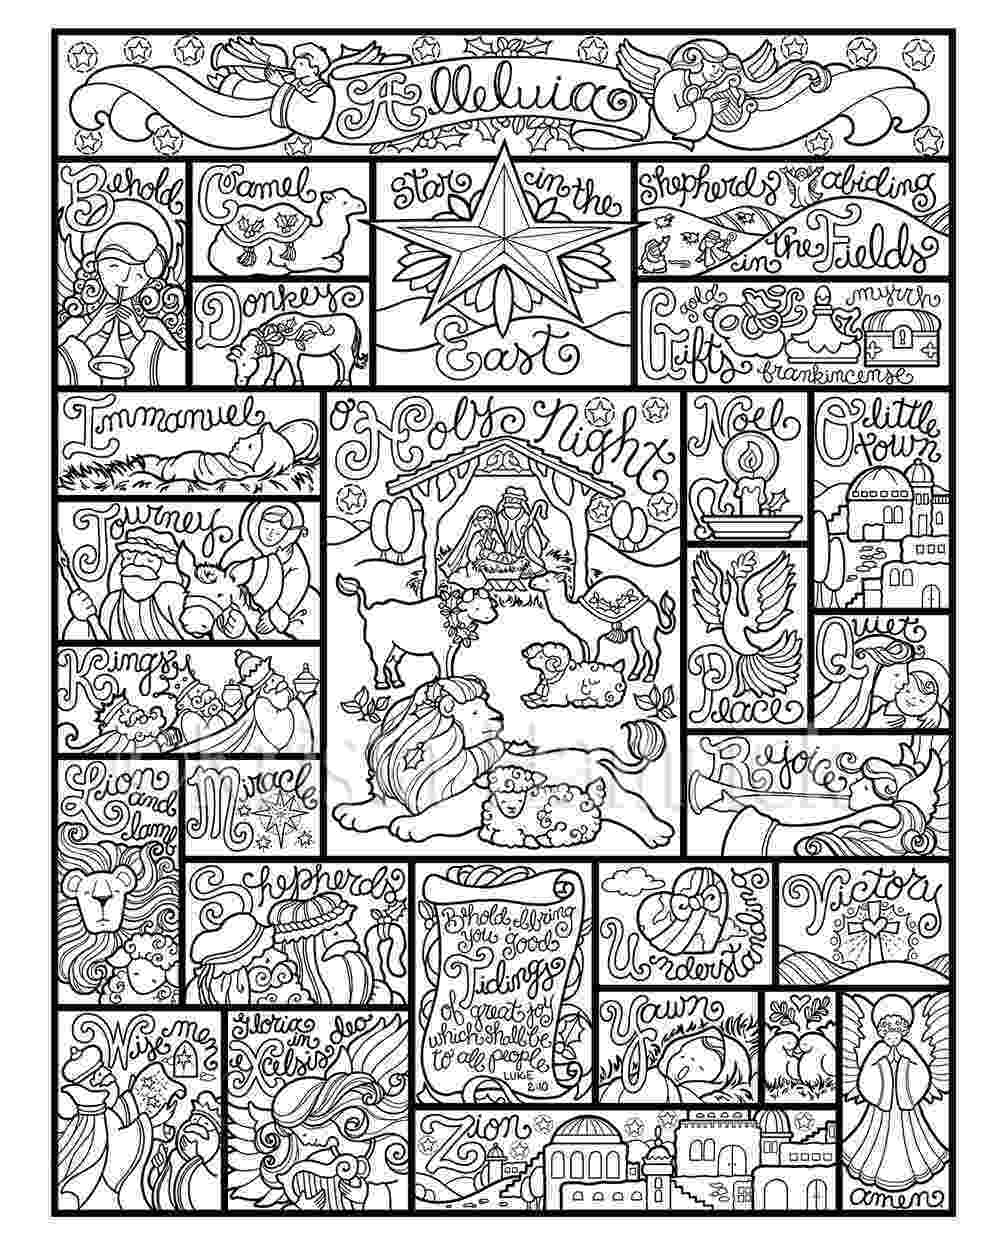 printable 8x10 free coloring pages best fortnite coloring pages printable free fortnite coloring 8x10 free printable pages